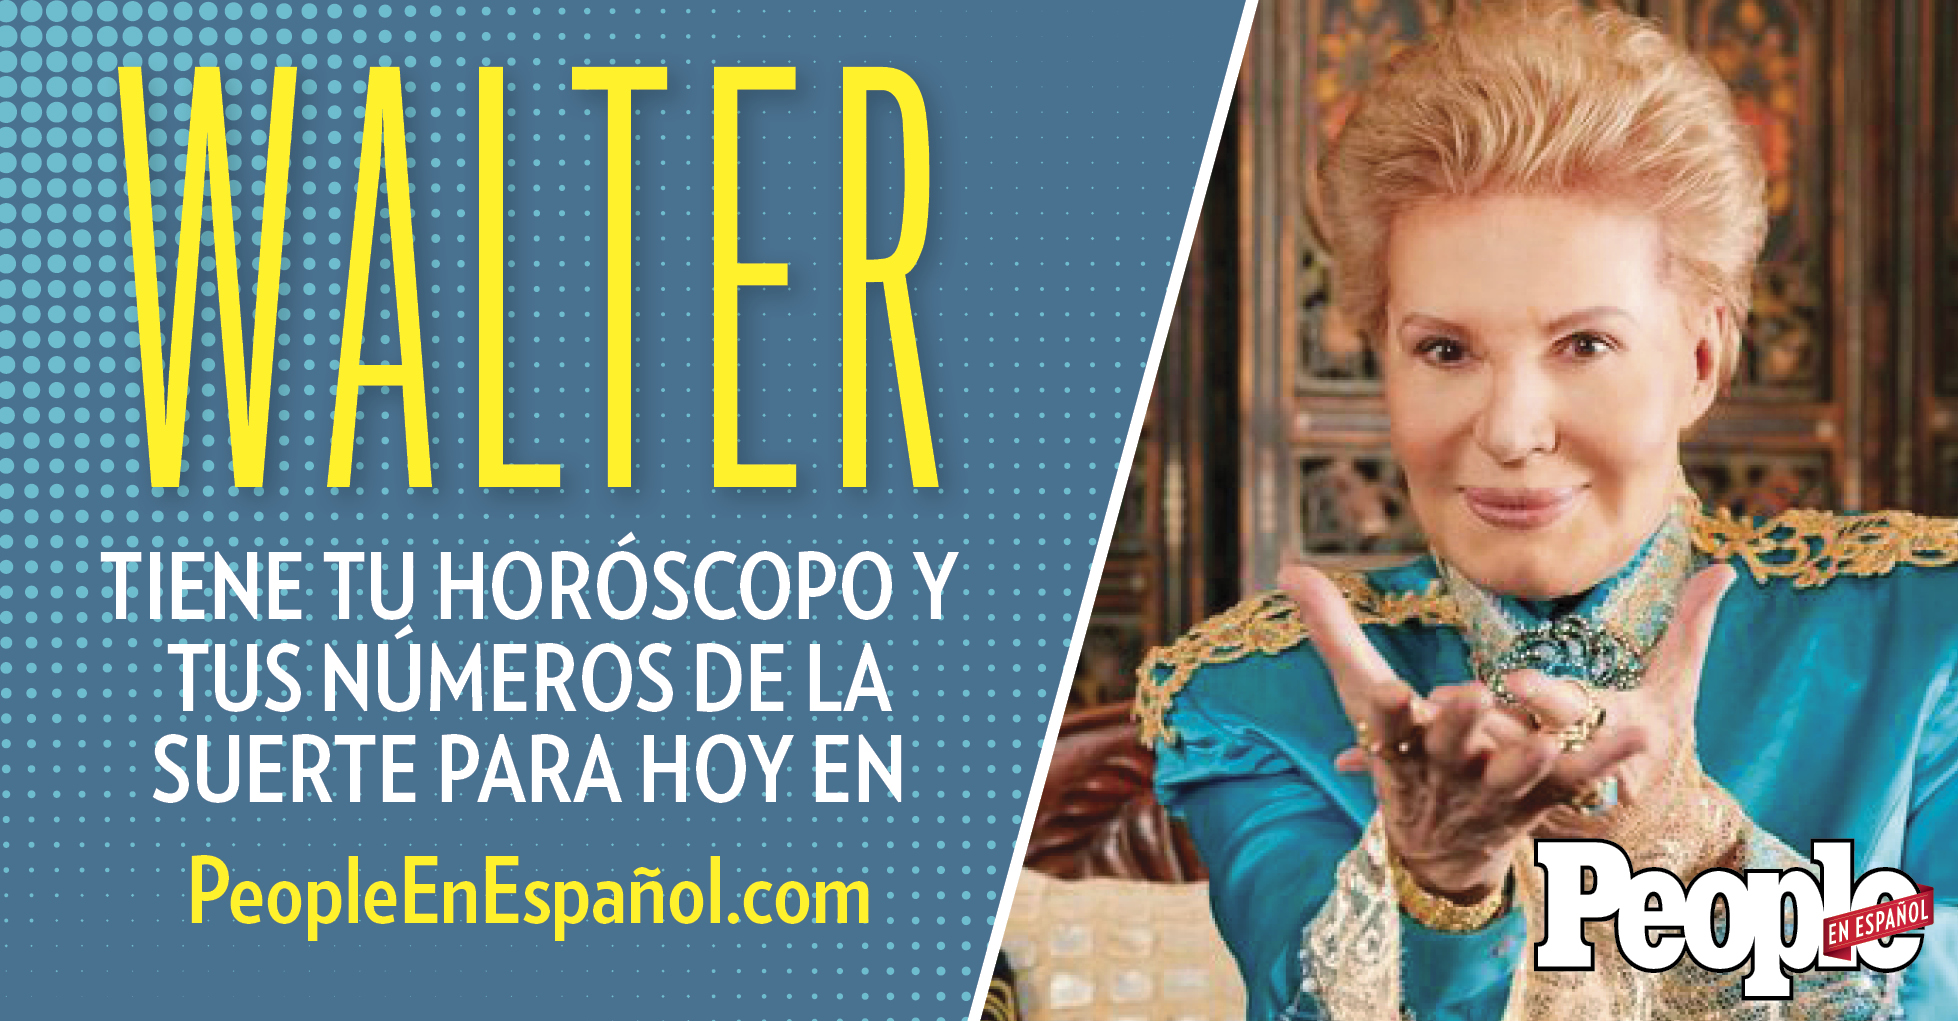 Walter Mercado/People en Español